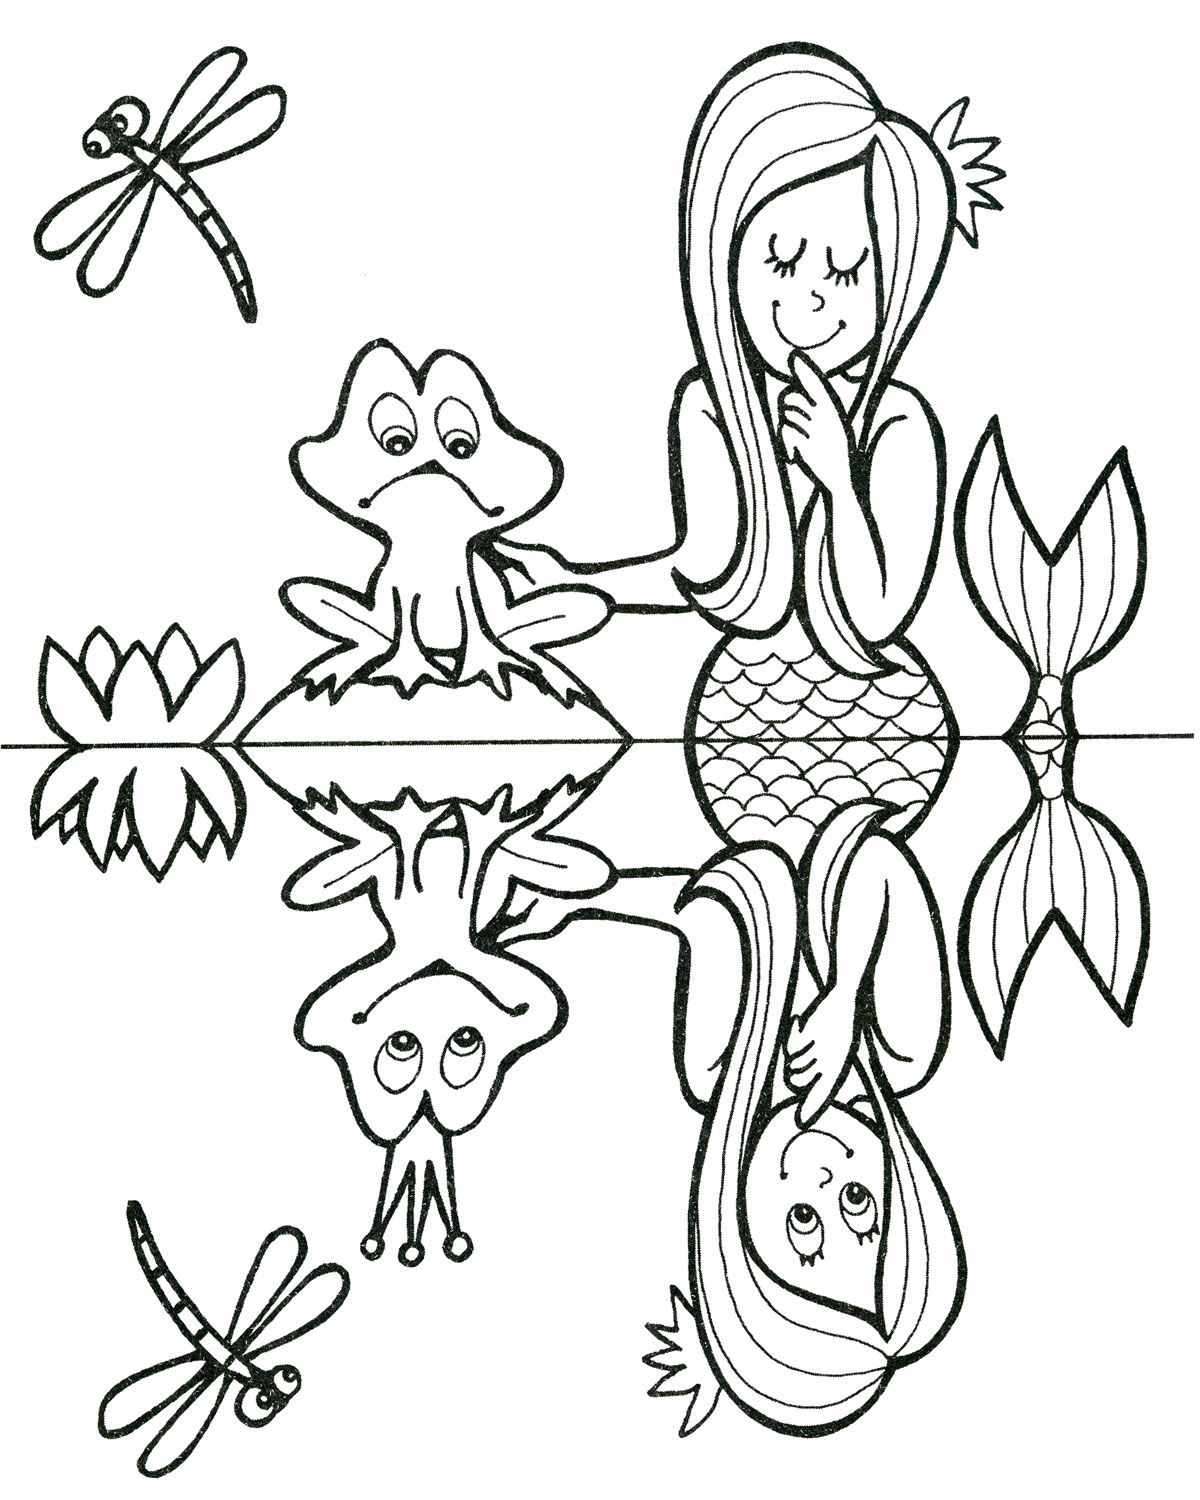 Coloring Pages For 5 7 Year Old Girls To Print For Free